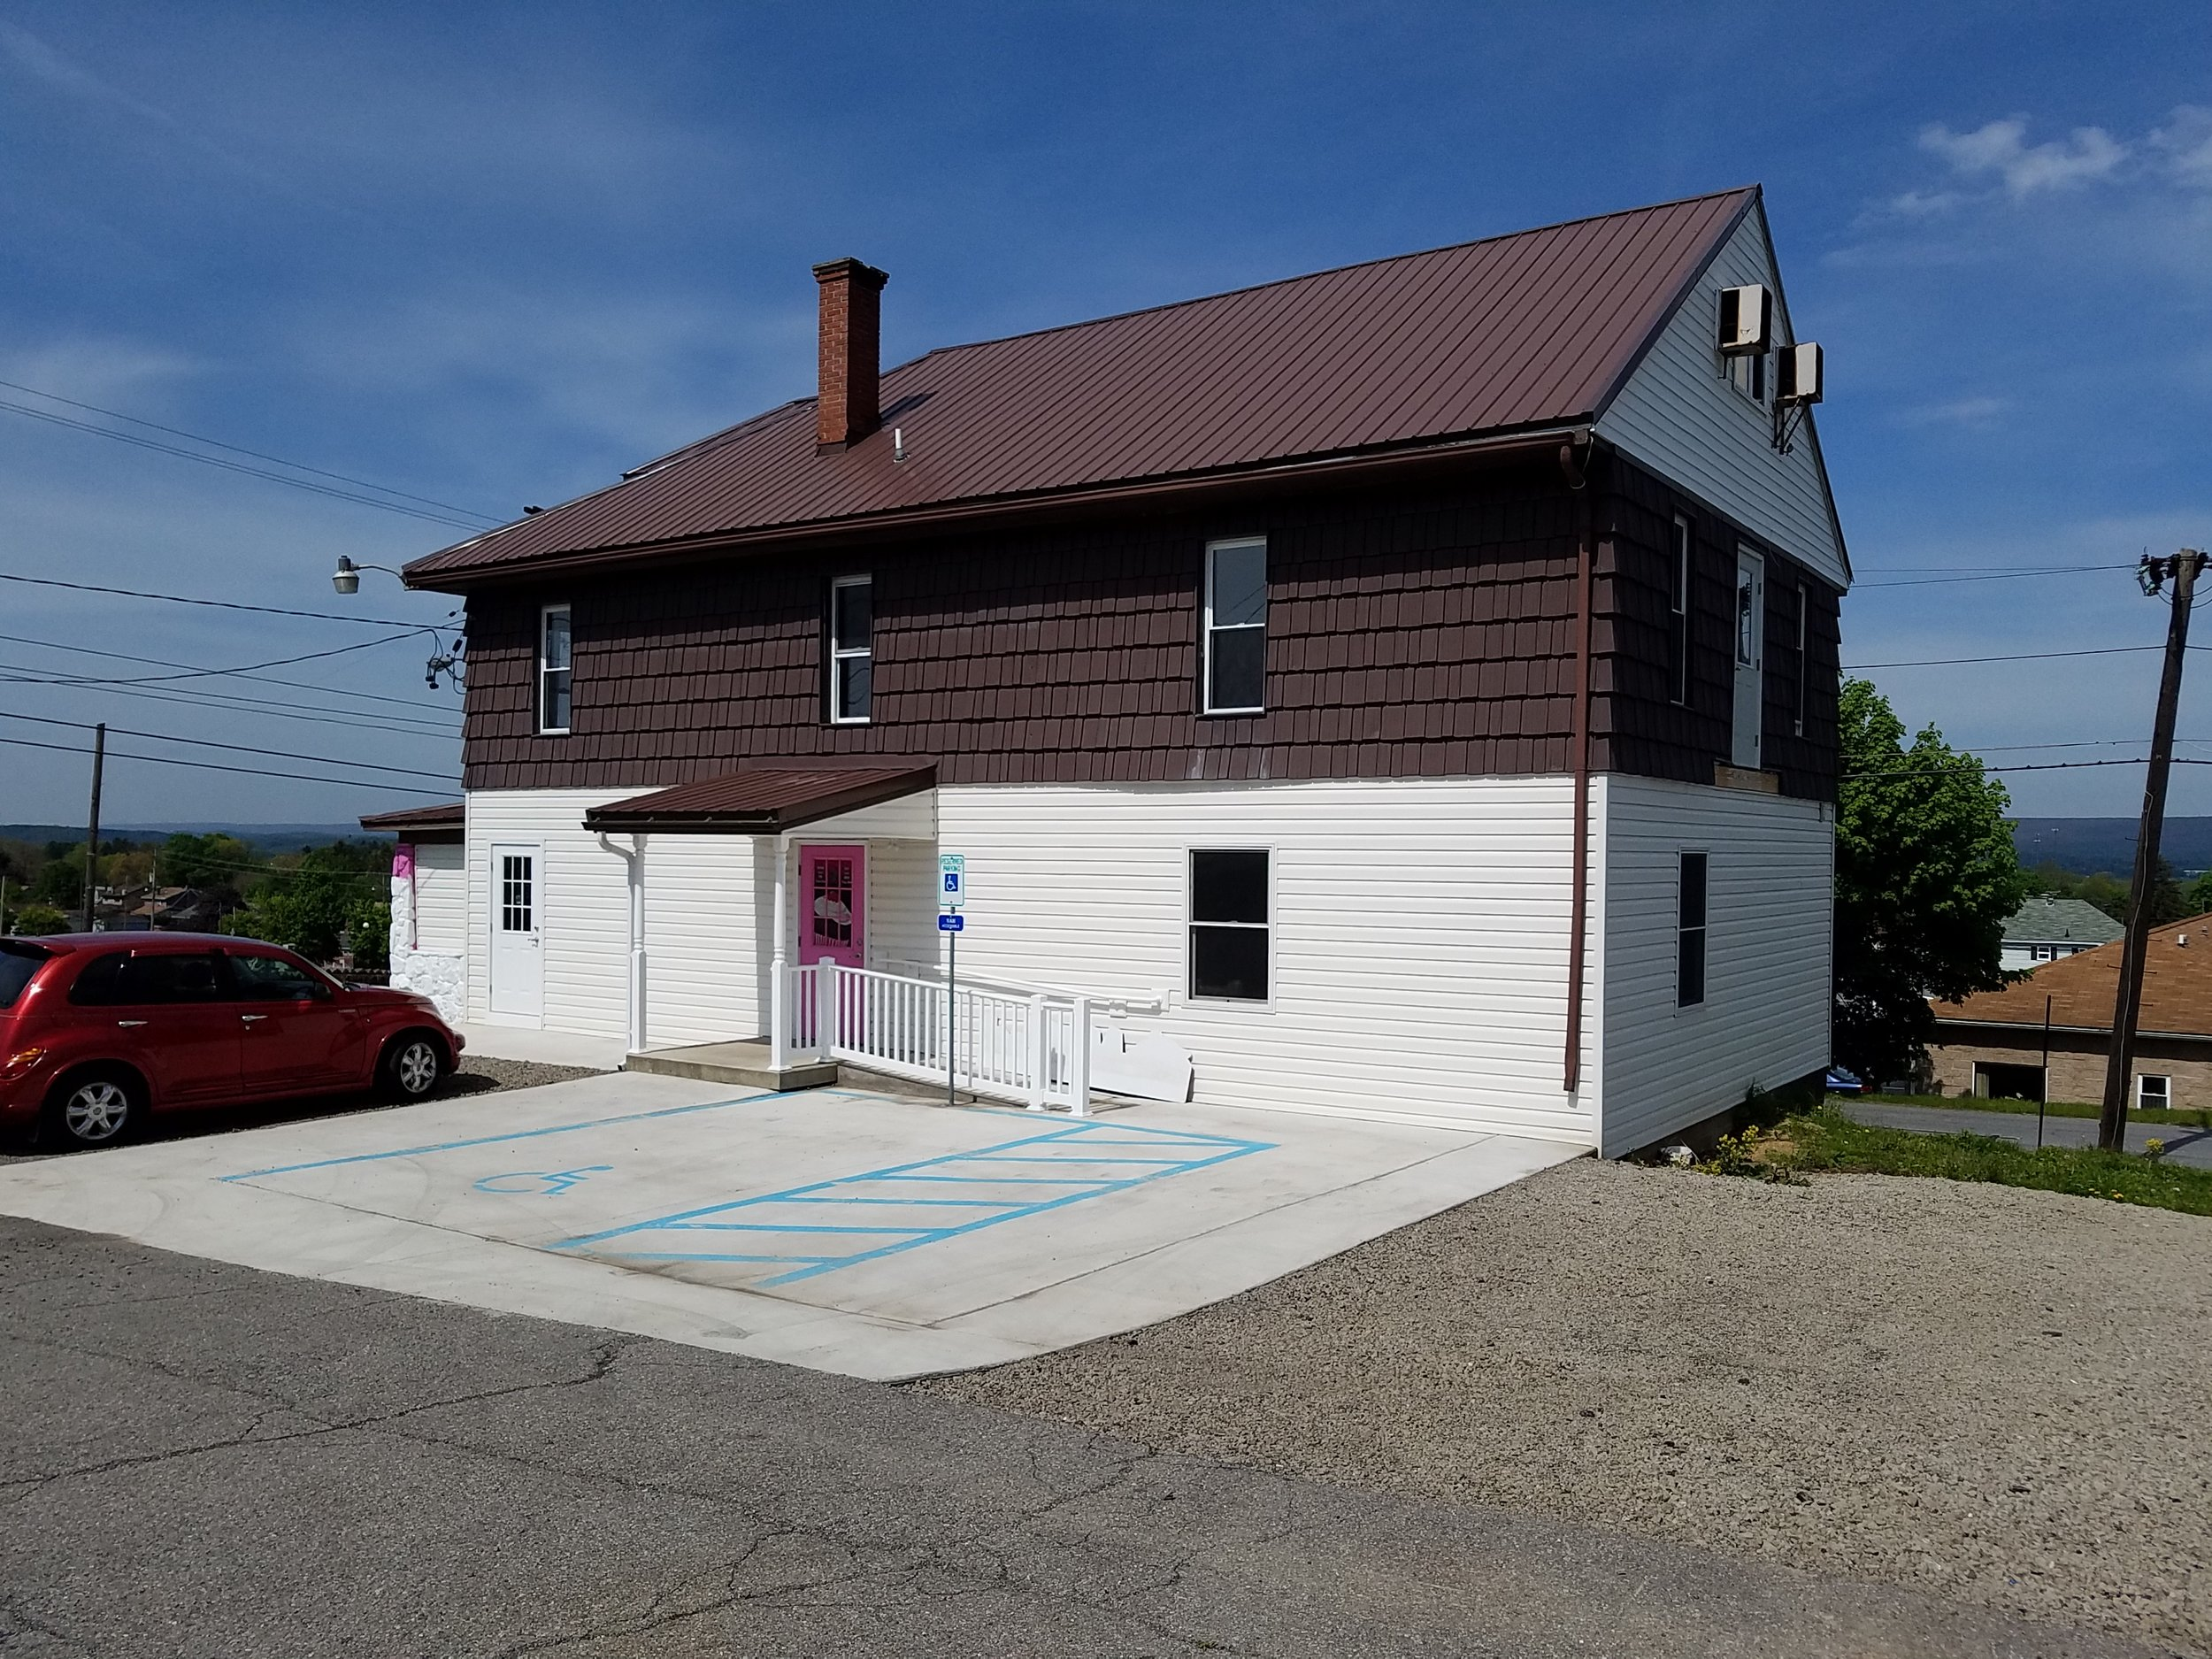 2429 Bedford Street, Geistown, Johnstown PA 15904 - LEASED $1,350 a month + Utilities